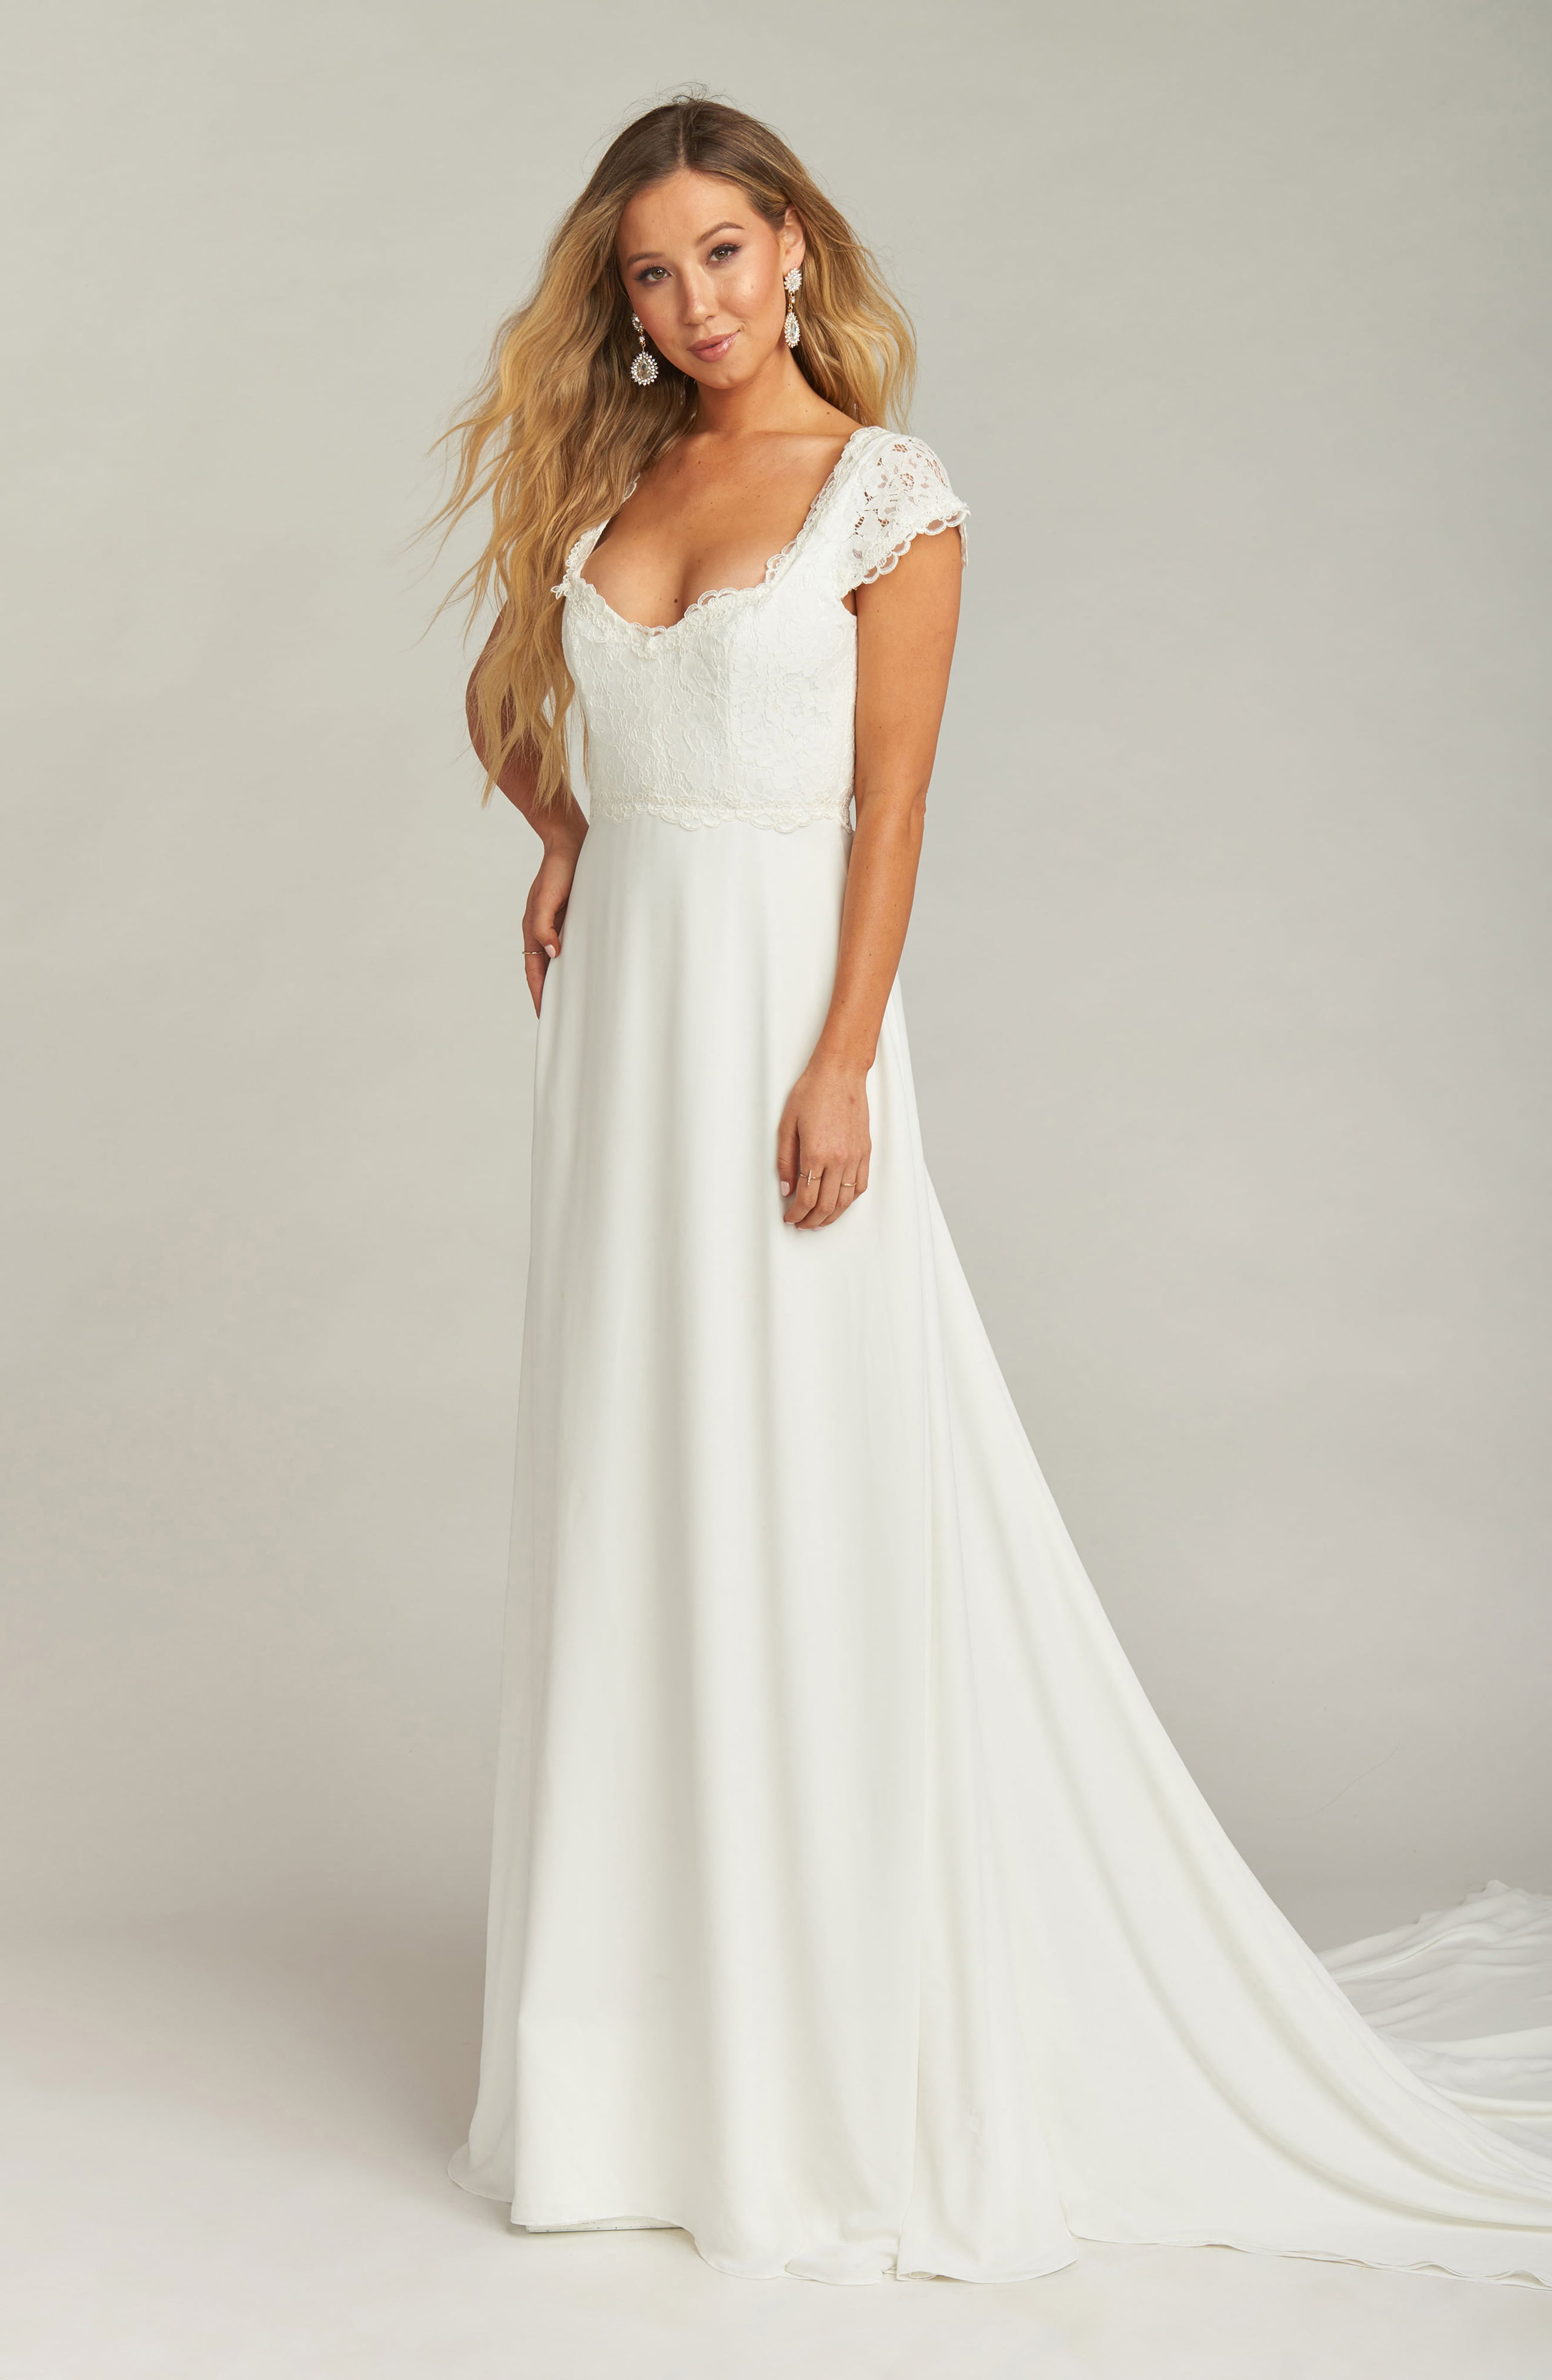 37+ Size 16 wedding dress with sleeves ideas in 2021